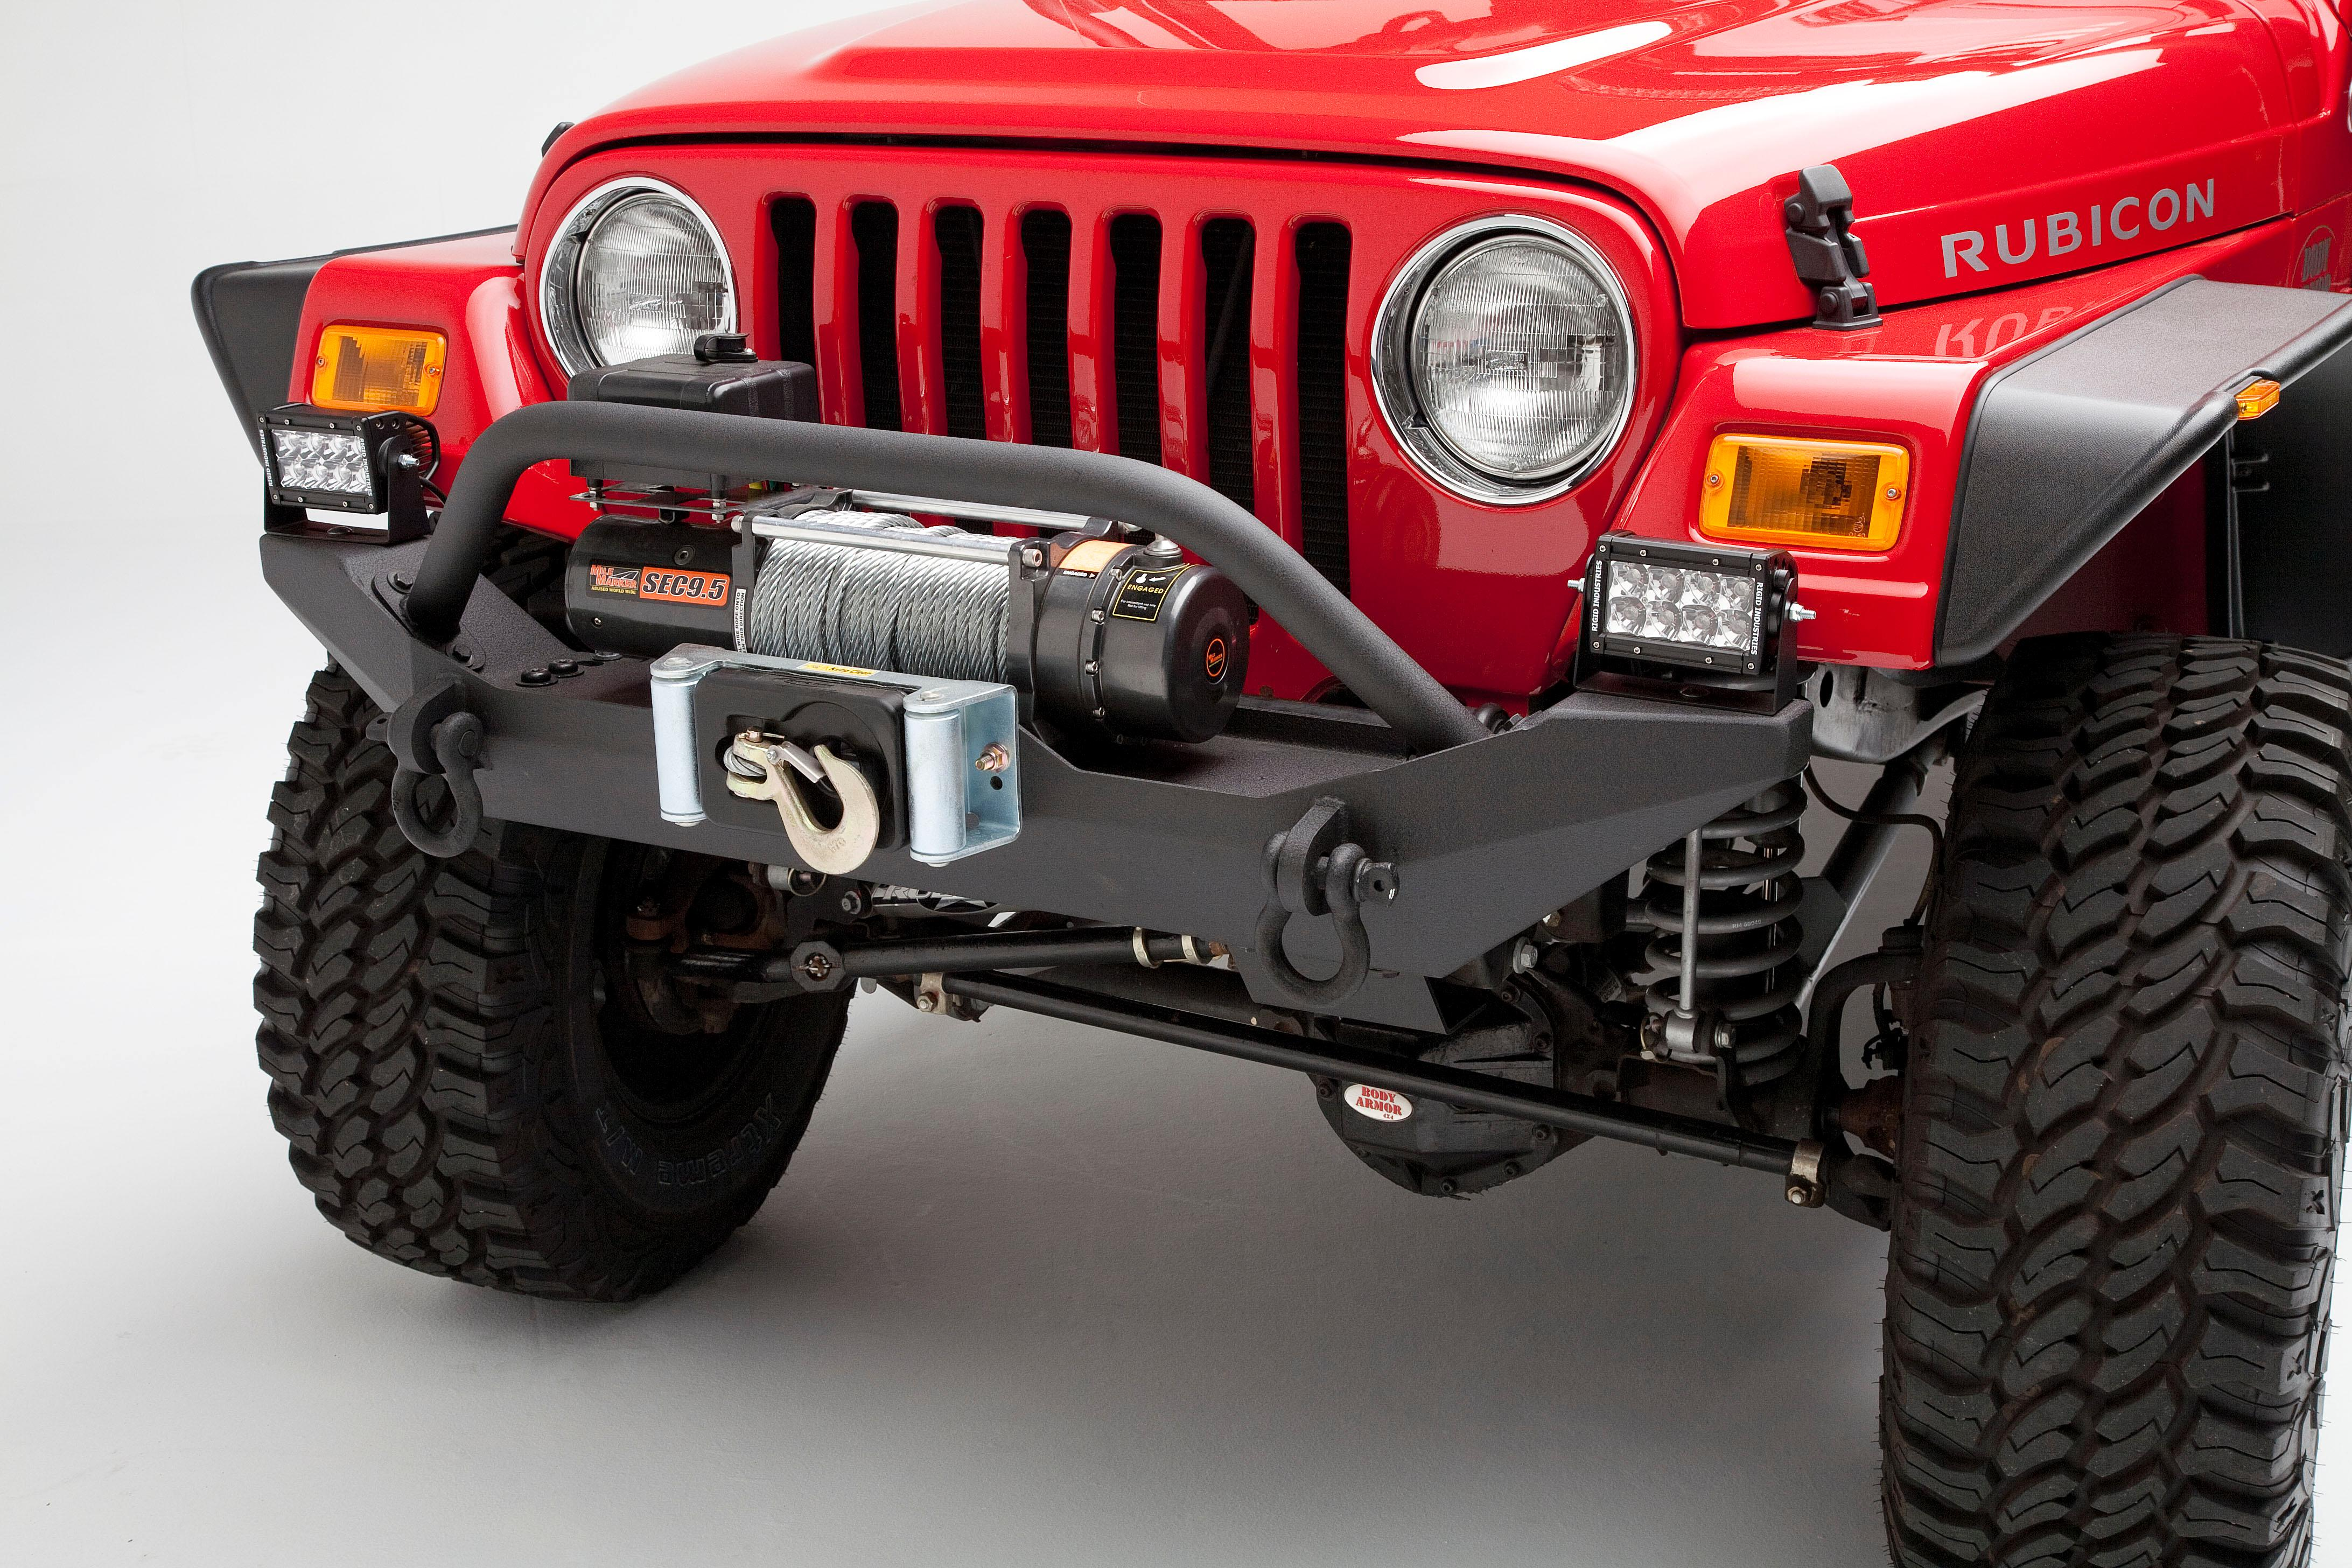 Body Armor 4x4 Tj 19531black Steel Front Winch Bumper For Jeep Rear Wrangler 2008 From The Manufacturer